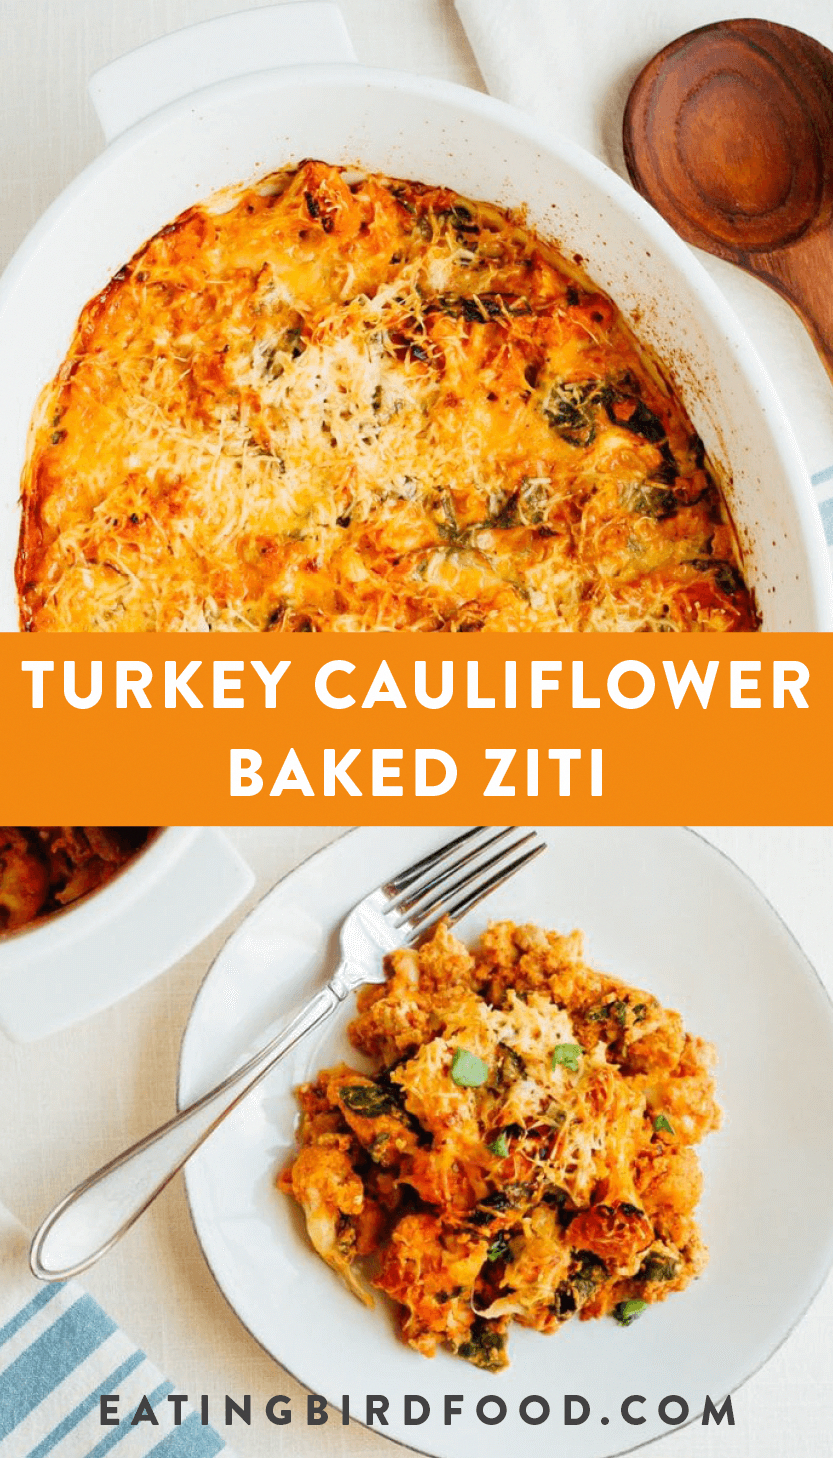 This turkey cauliflower baked ziti uses cooked cauliflower instead of pasta noodles so it's low-carb and gluten-free while still being cheesy and delicious.